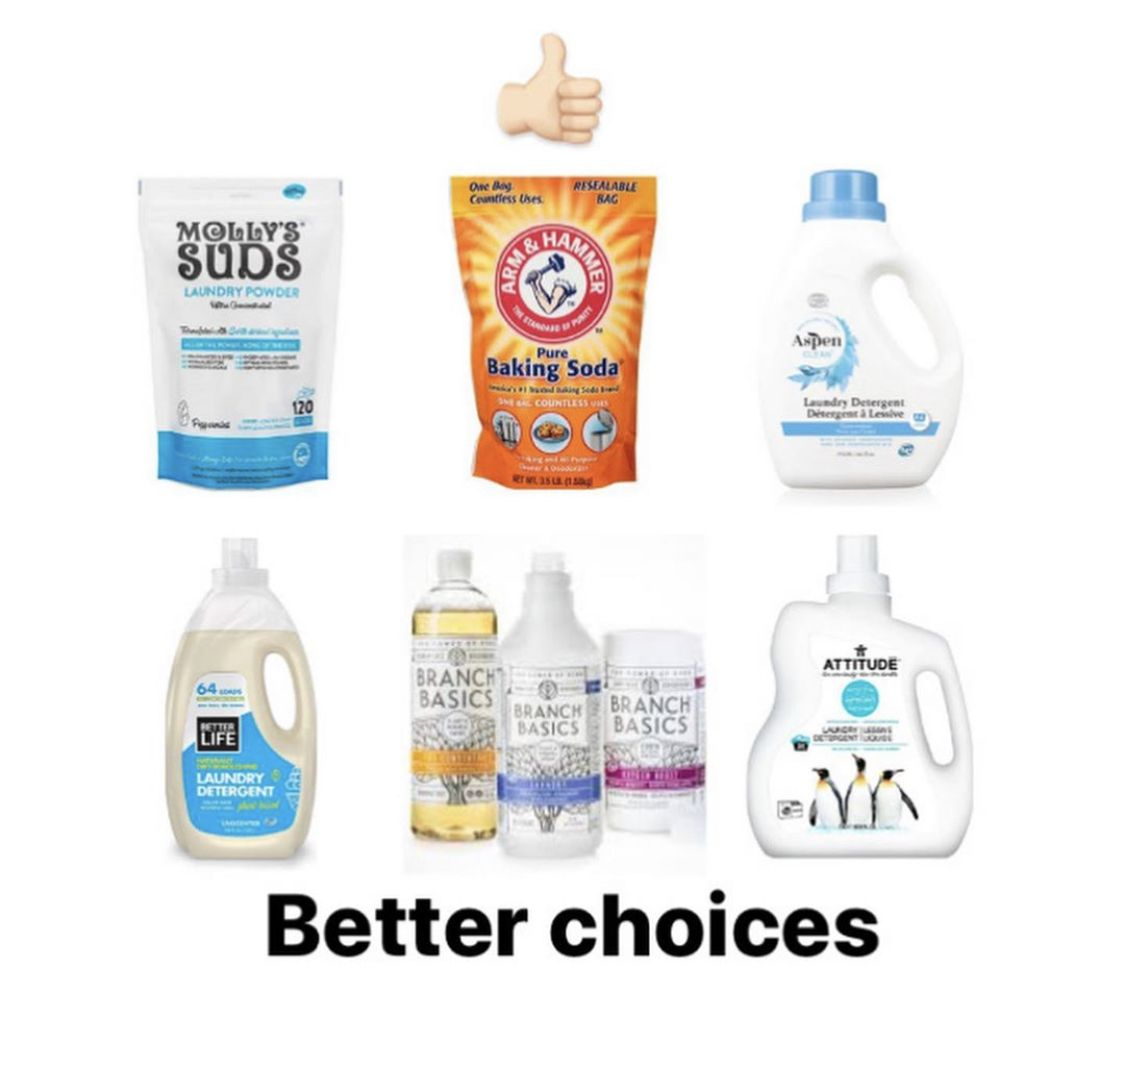 Pin By A G L On Maternity Babies In 2020 Branch Basics Laundry Detergent Pure Products